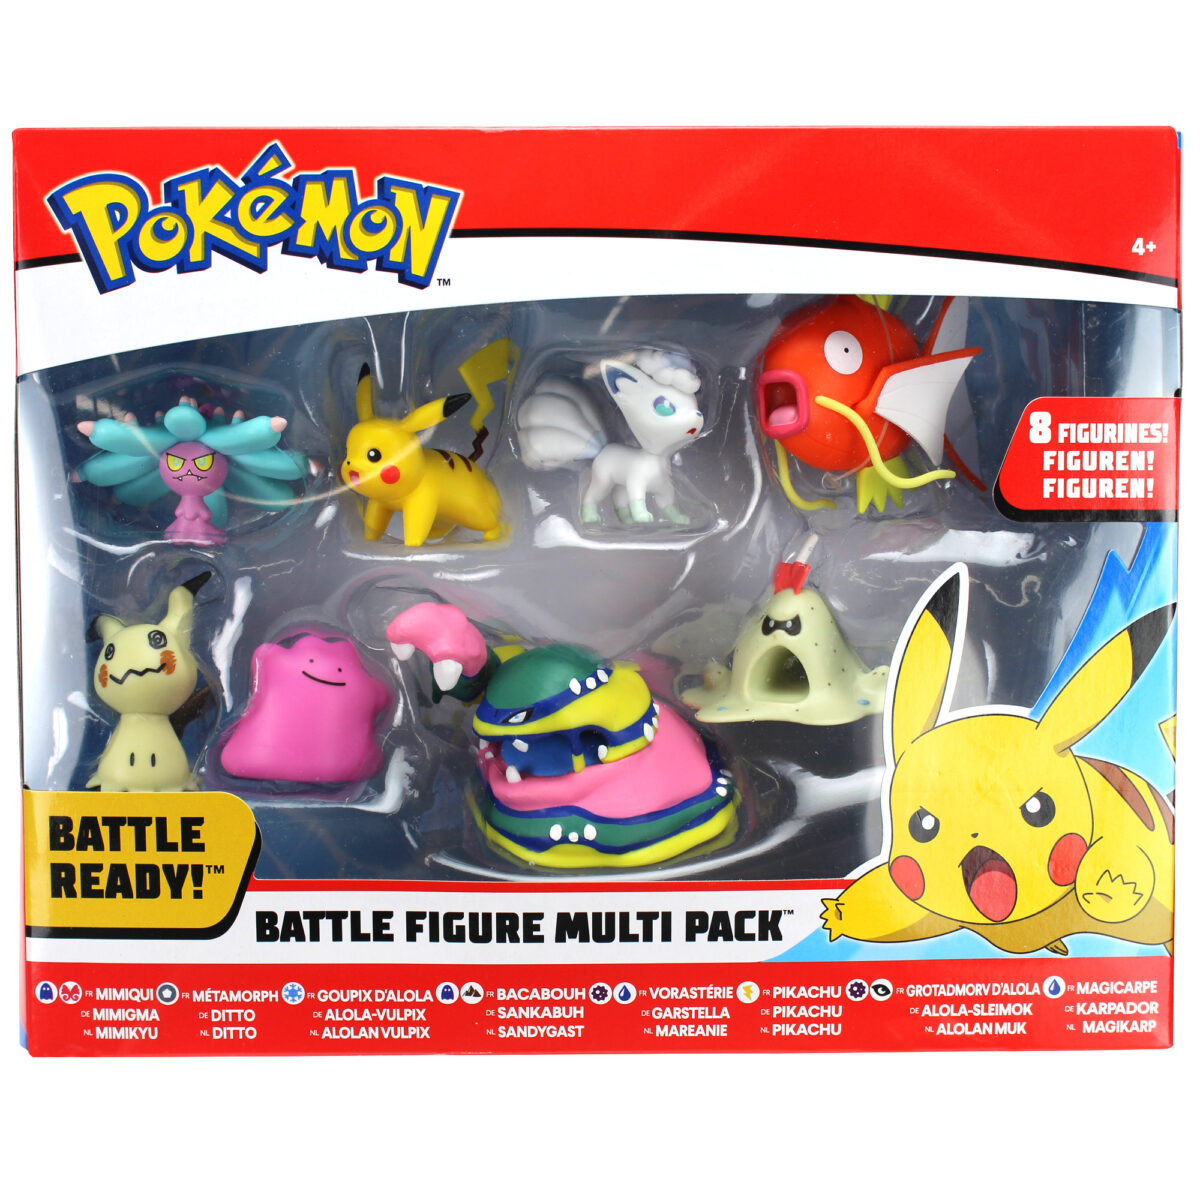 Picture of the Pokemon Multi-Pack